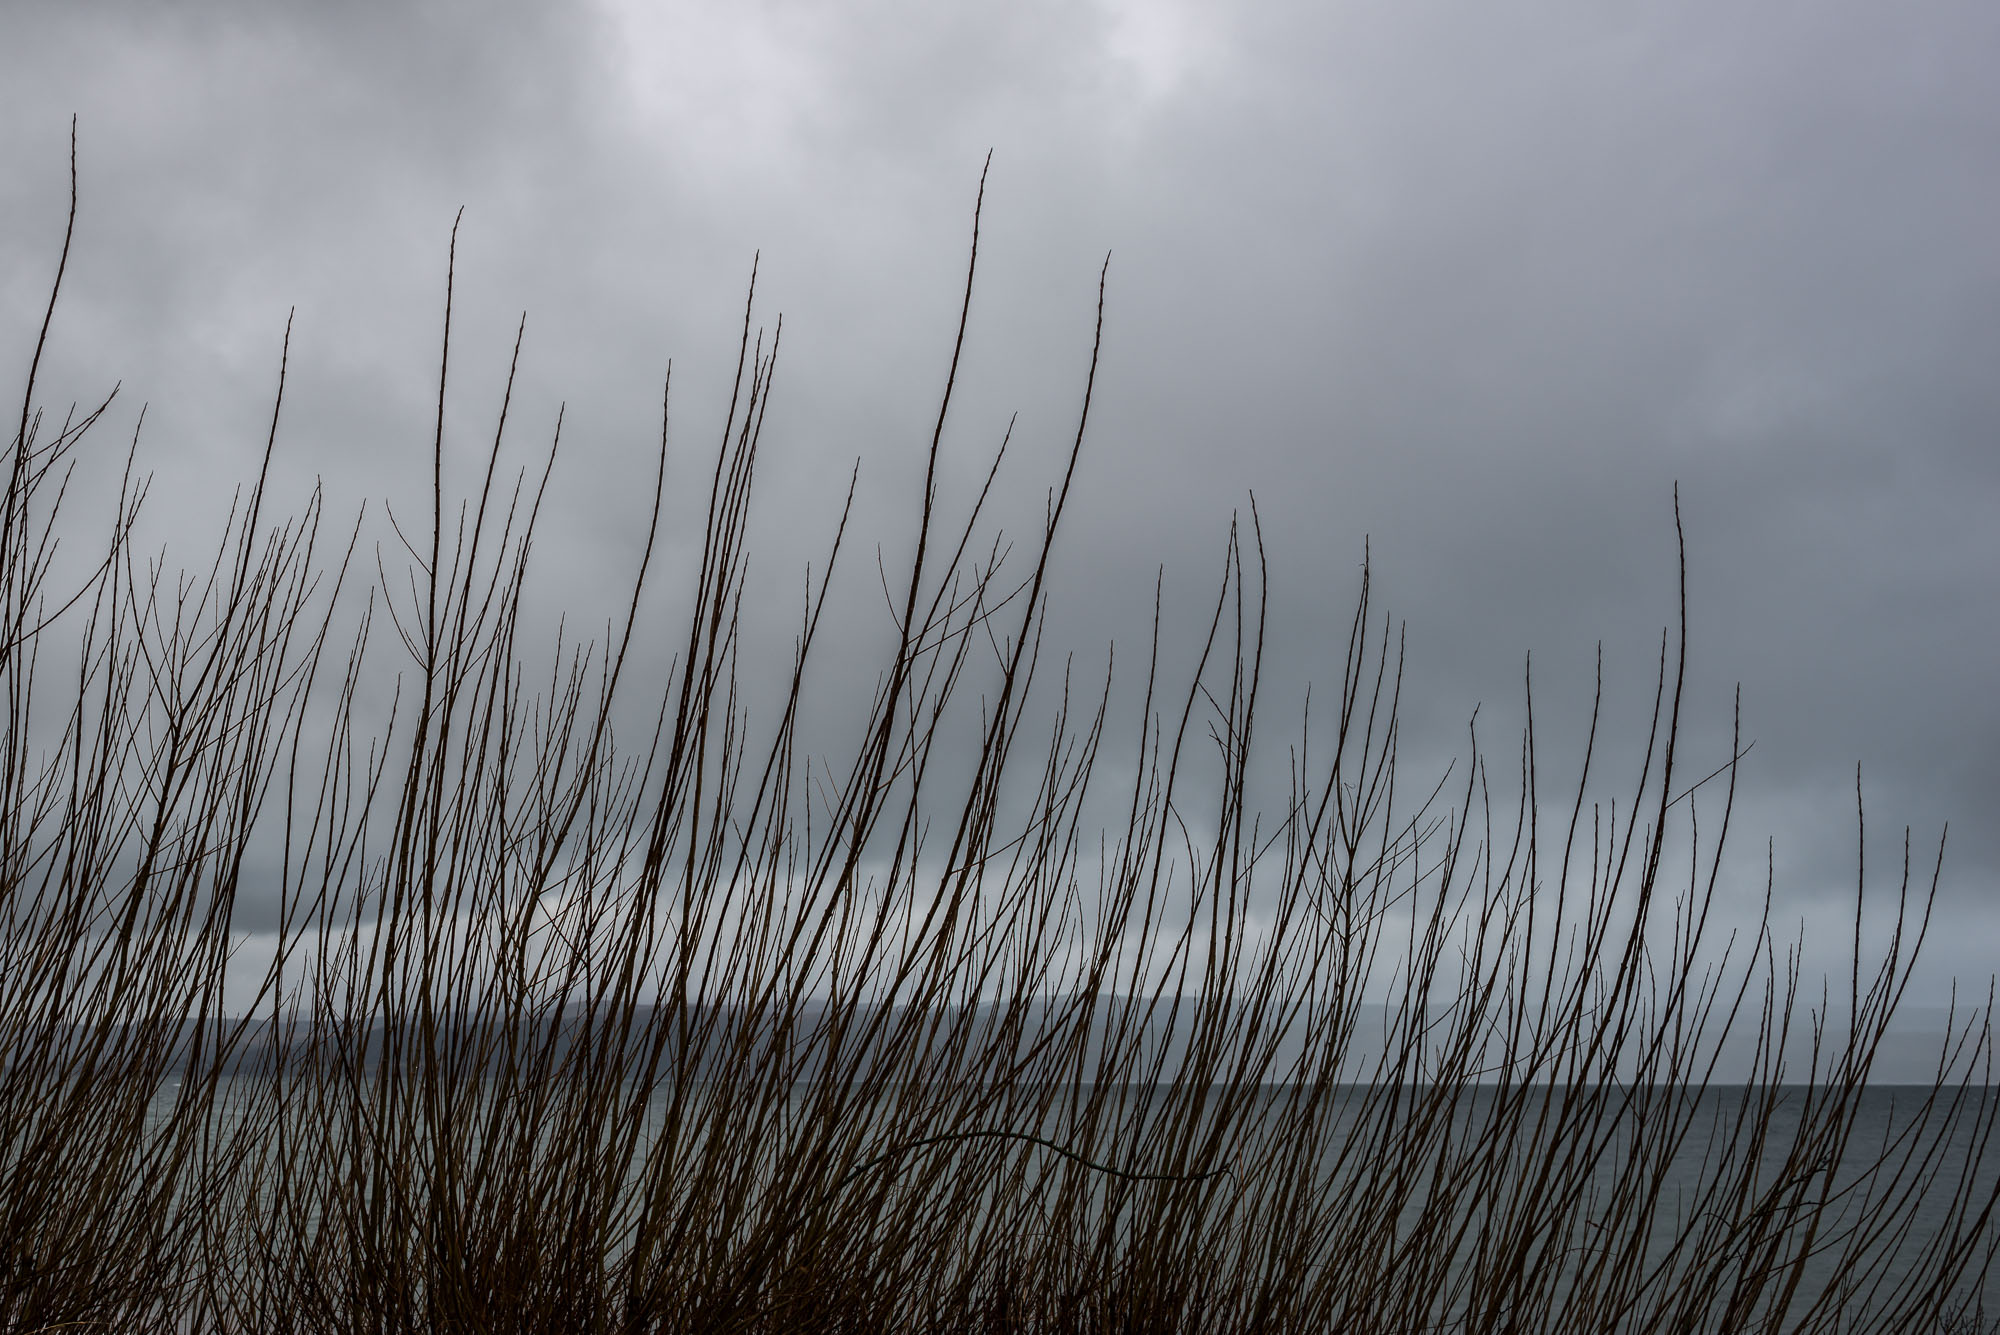 Seashore scrub with cloudy sky